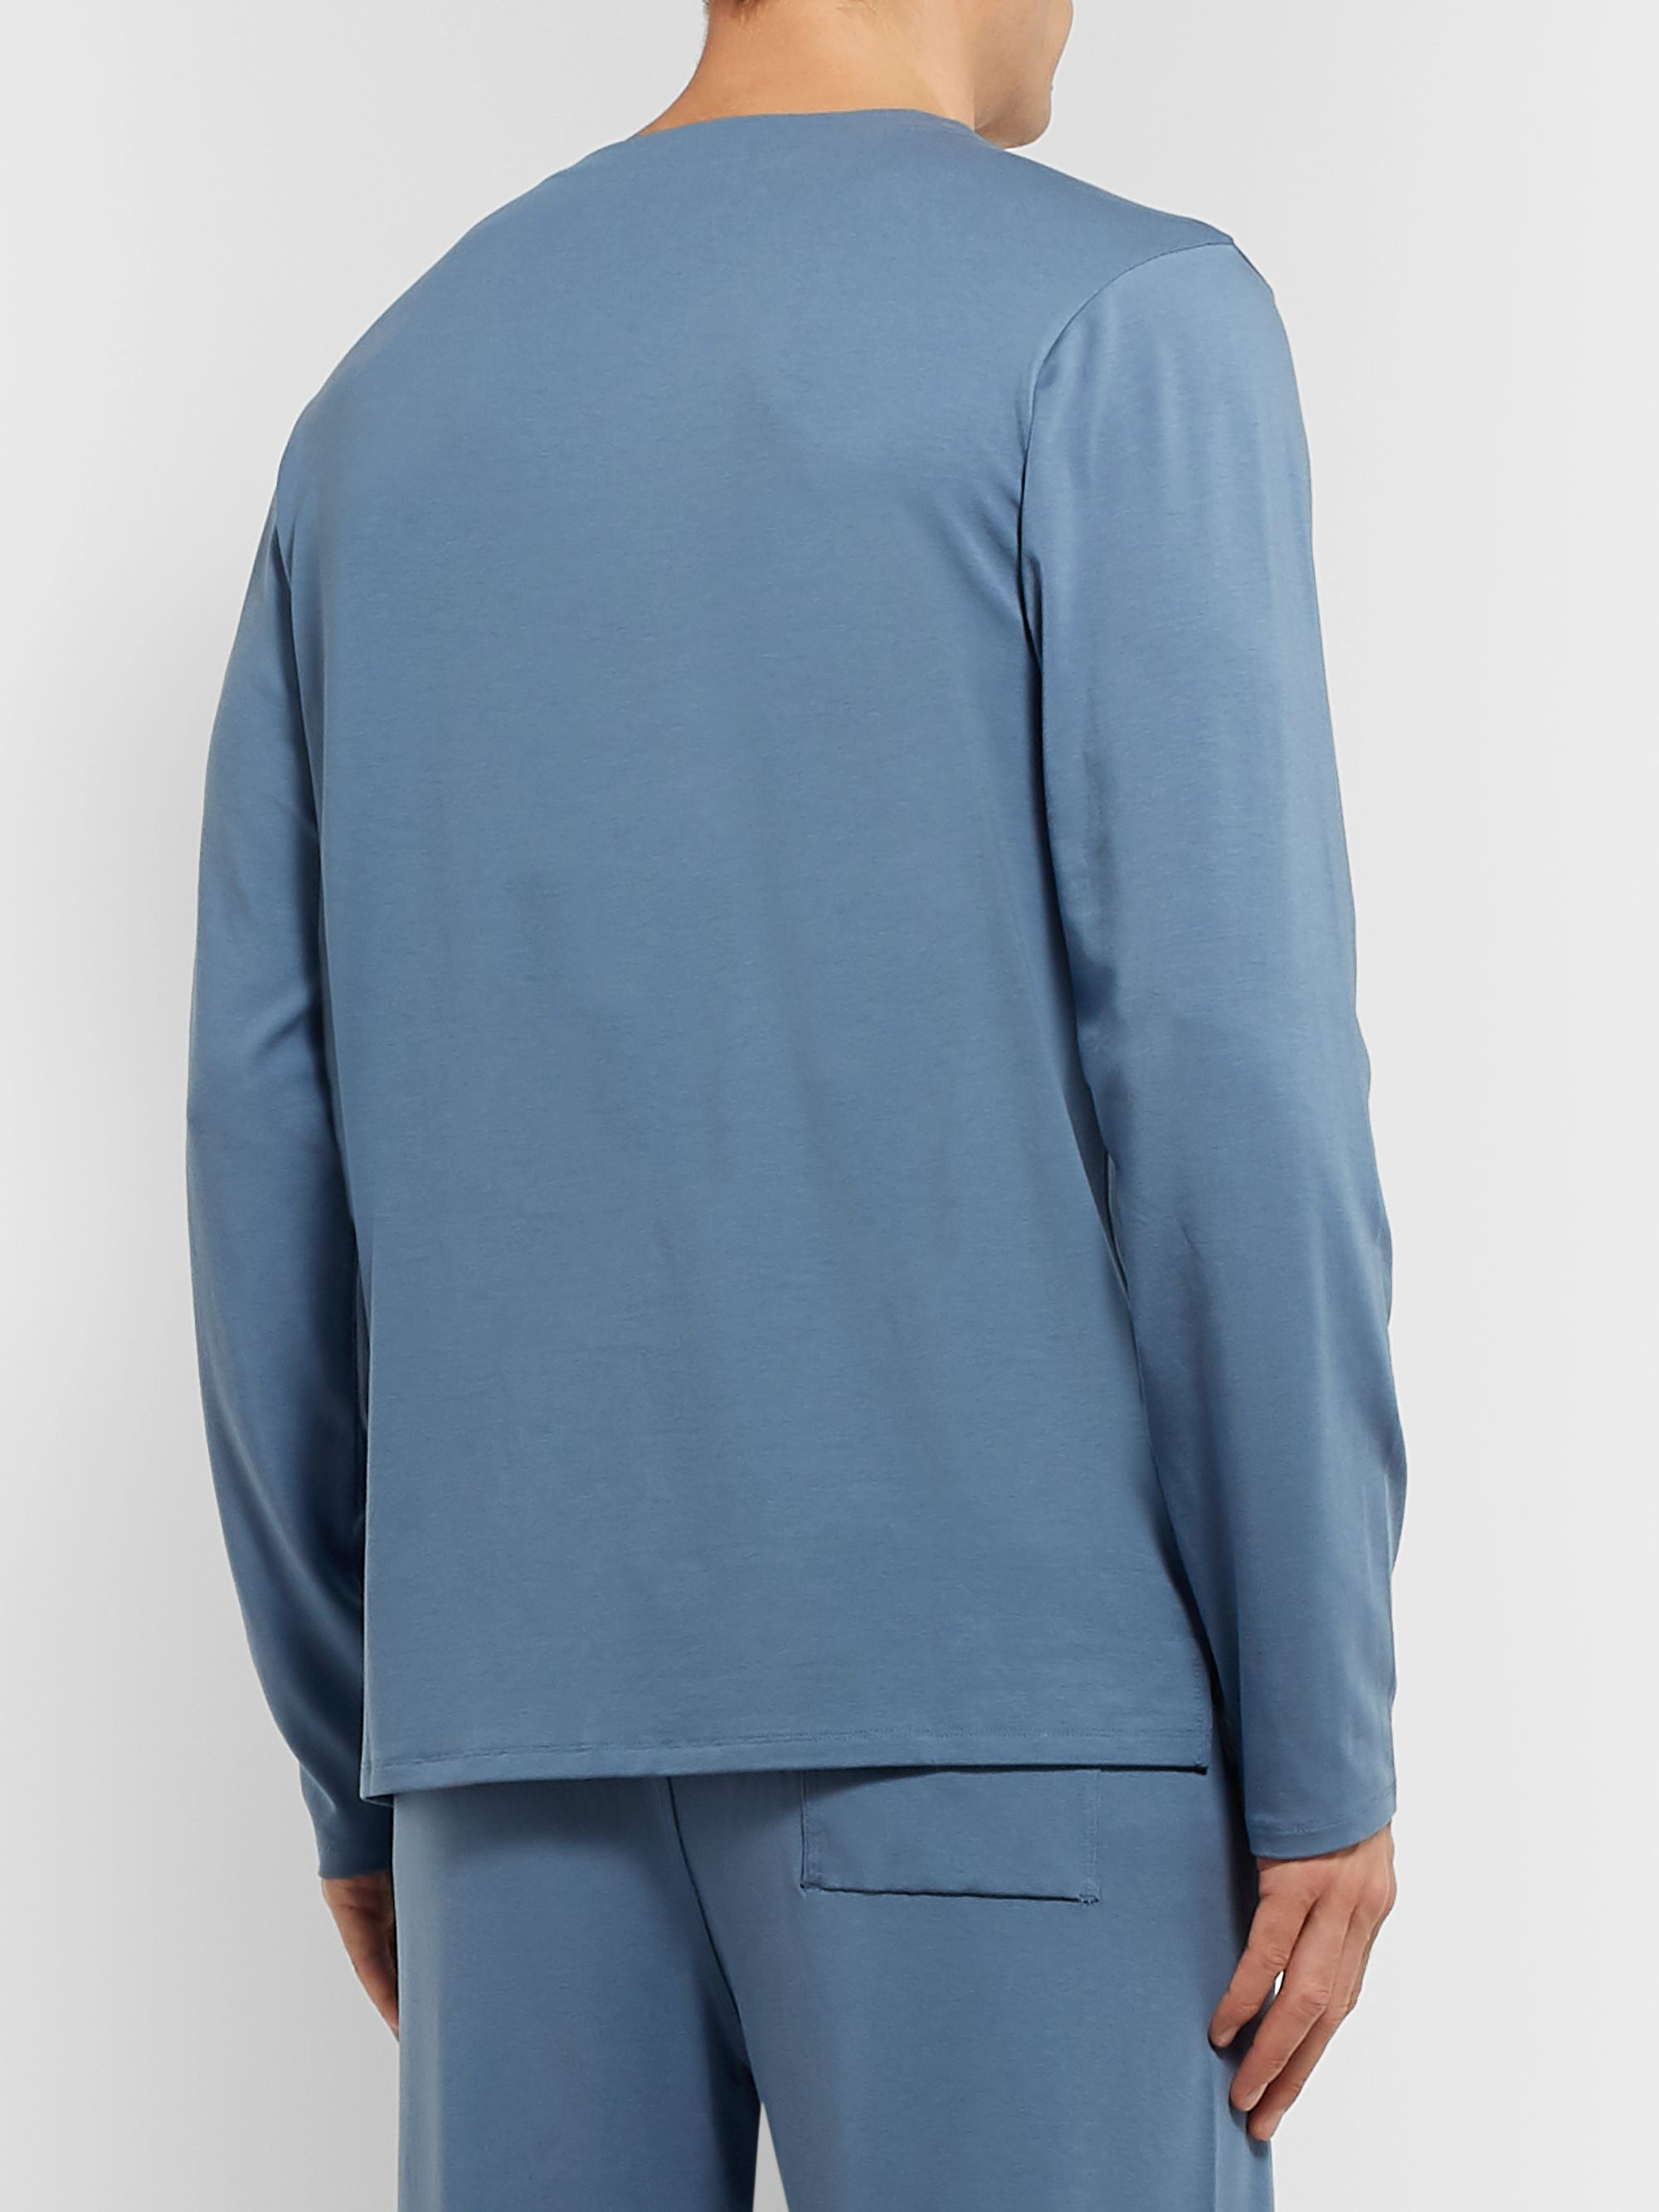 Hamilton and Hare Stretch-Lyocell and Cotton-Blend Pyjama Top